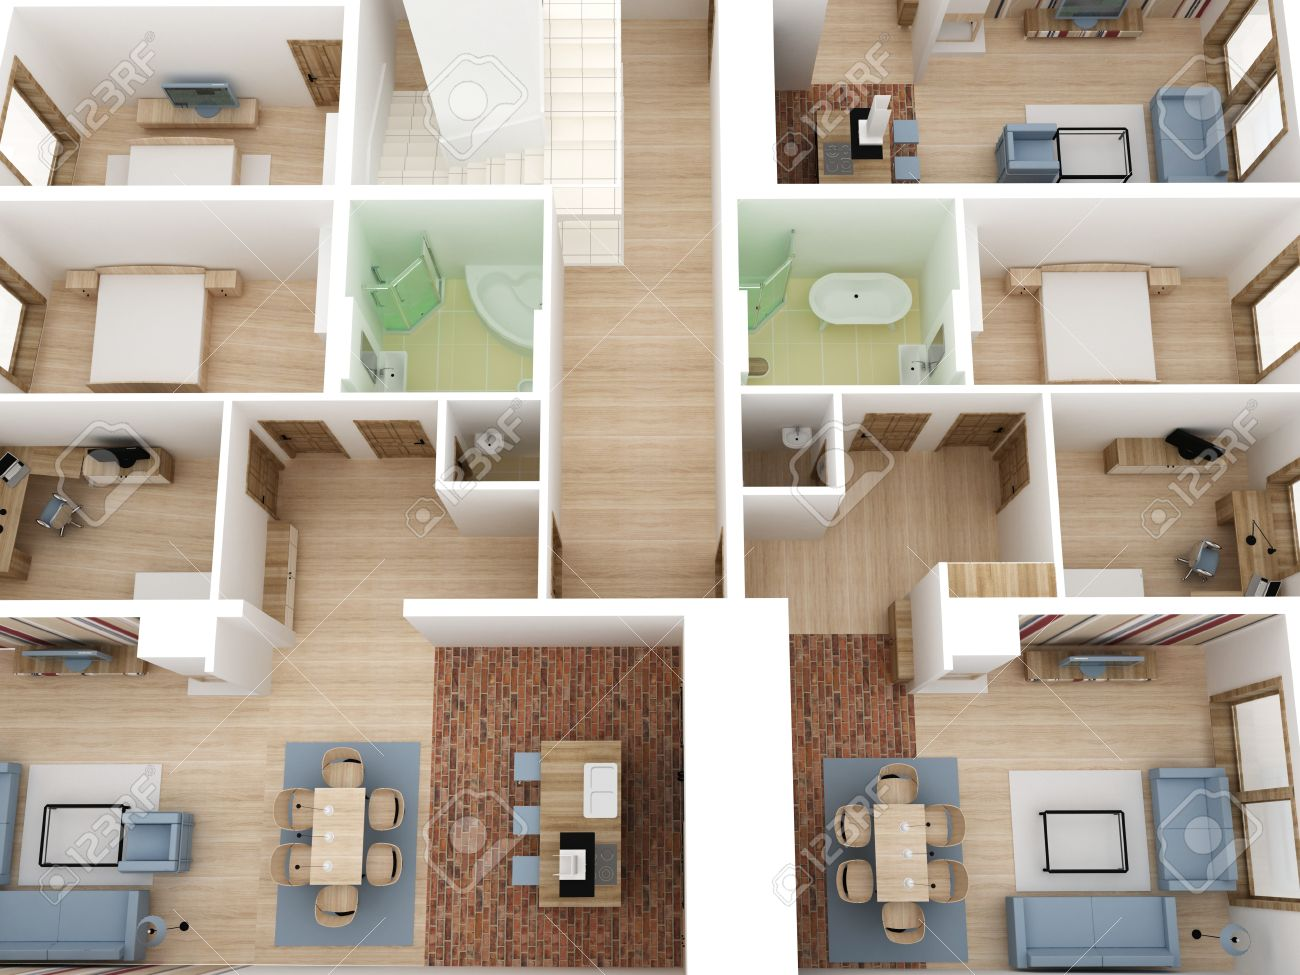 Apartments Level Top View Interior Design Process Stock Photo